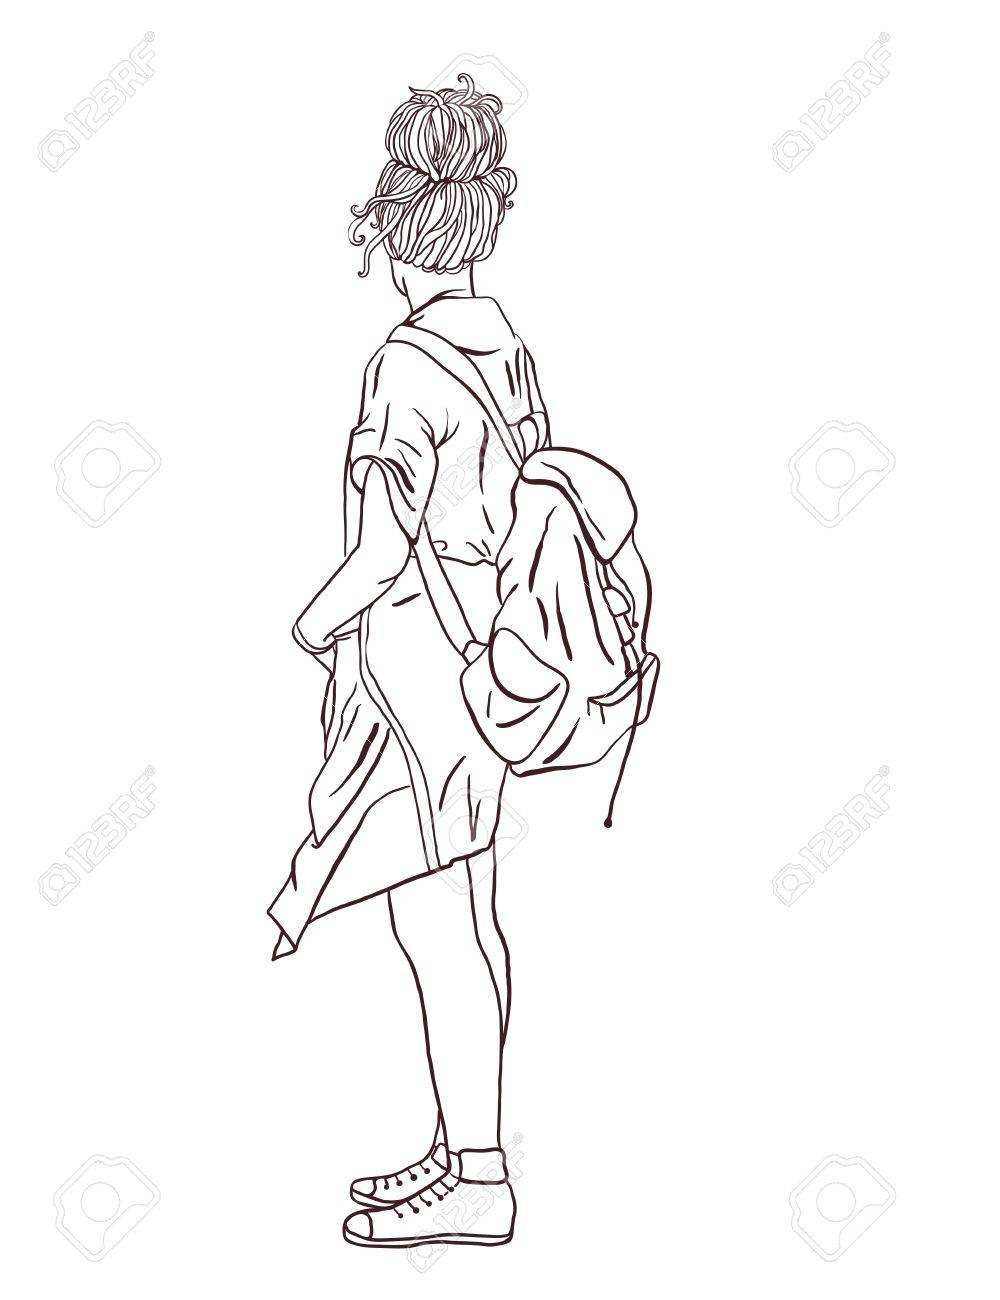 hippie girl with a backpack bohemian girl boho style illustration 1970s Attire hippie girl with a backpack bohemian girl boho style illustration for print